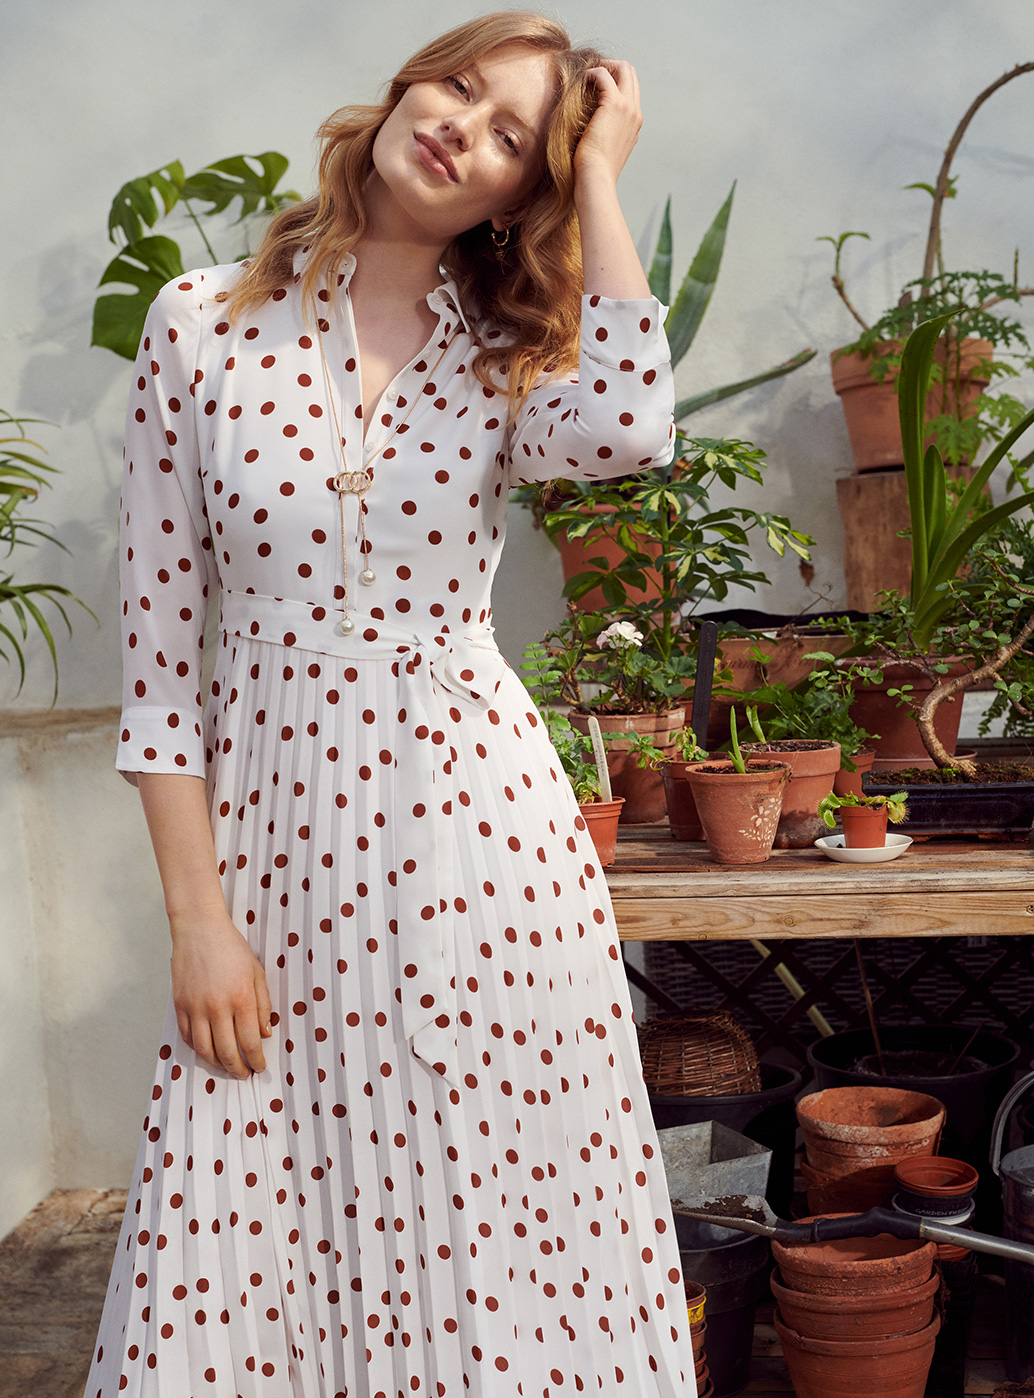 Model wearing a polka dot dress stands in front of potted plants.